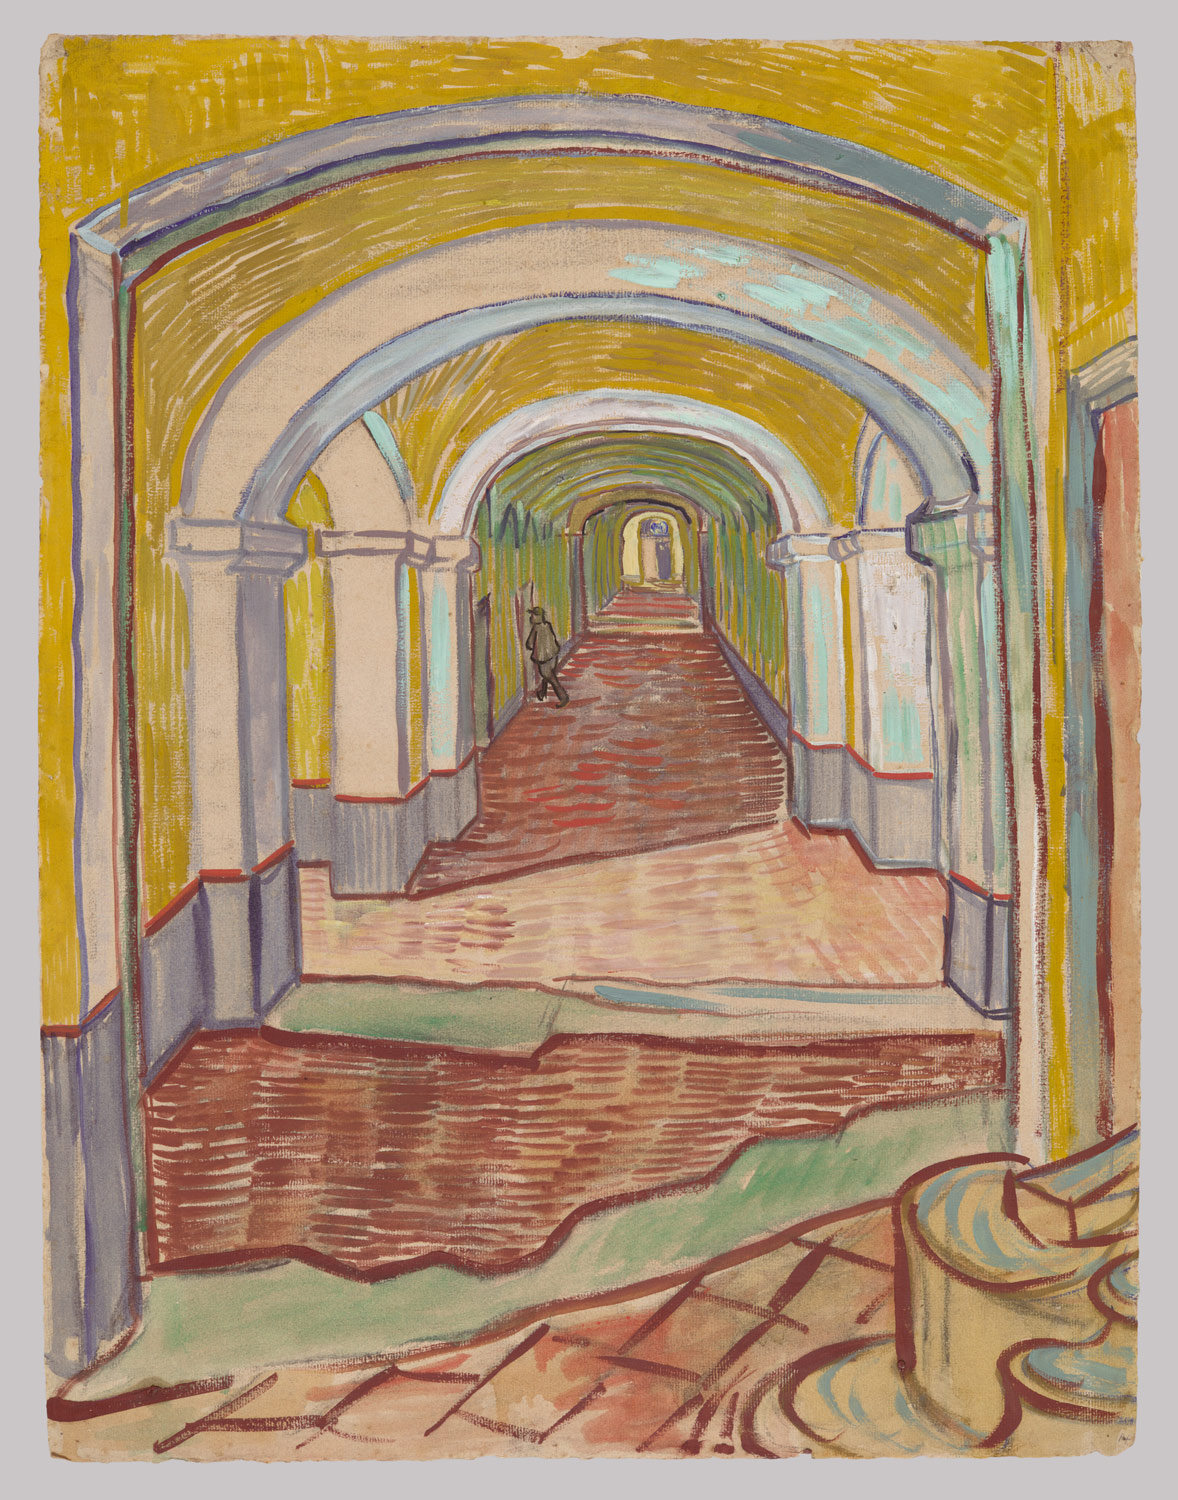 vincent van gogh essay heilbrunn timeline of art corridor in the asylum